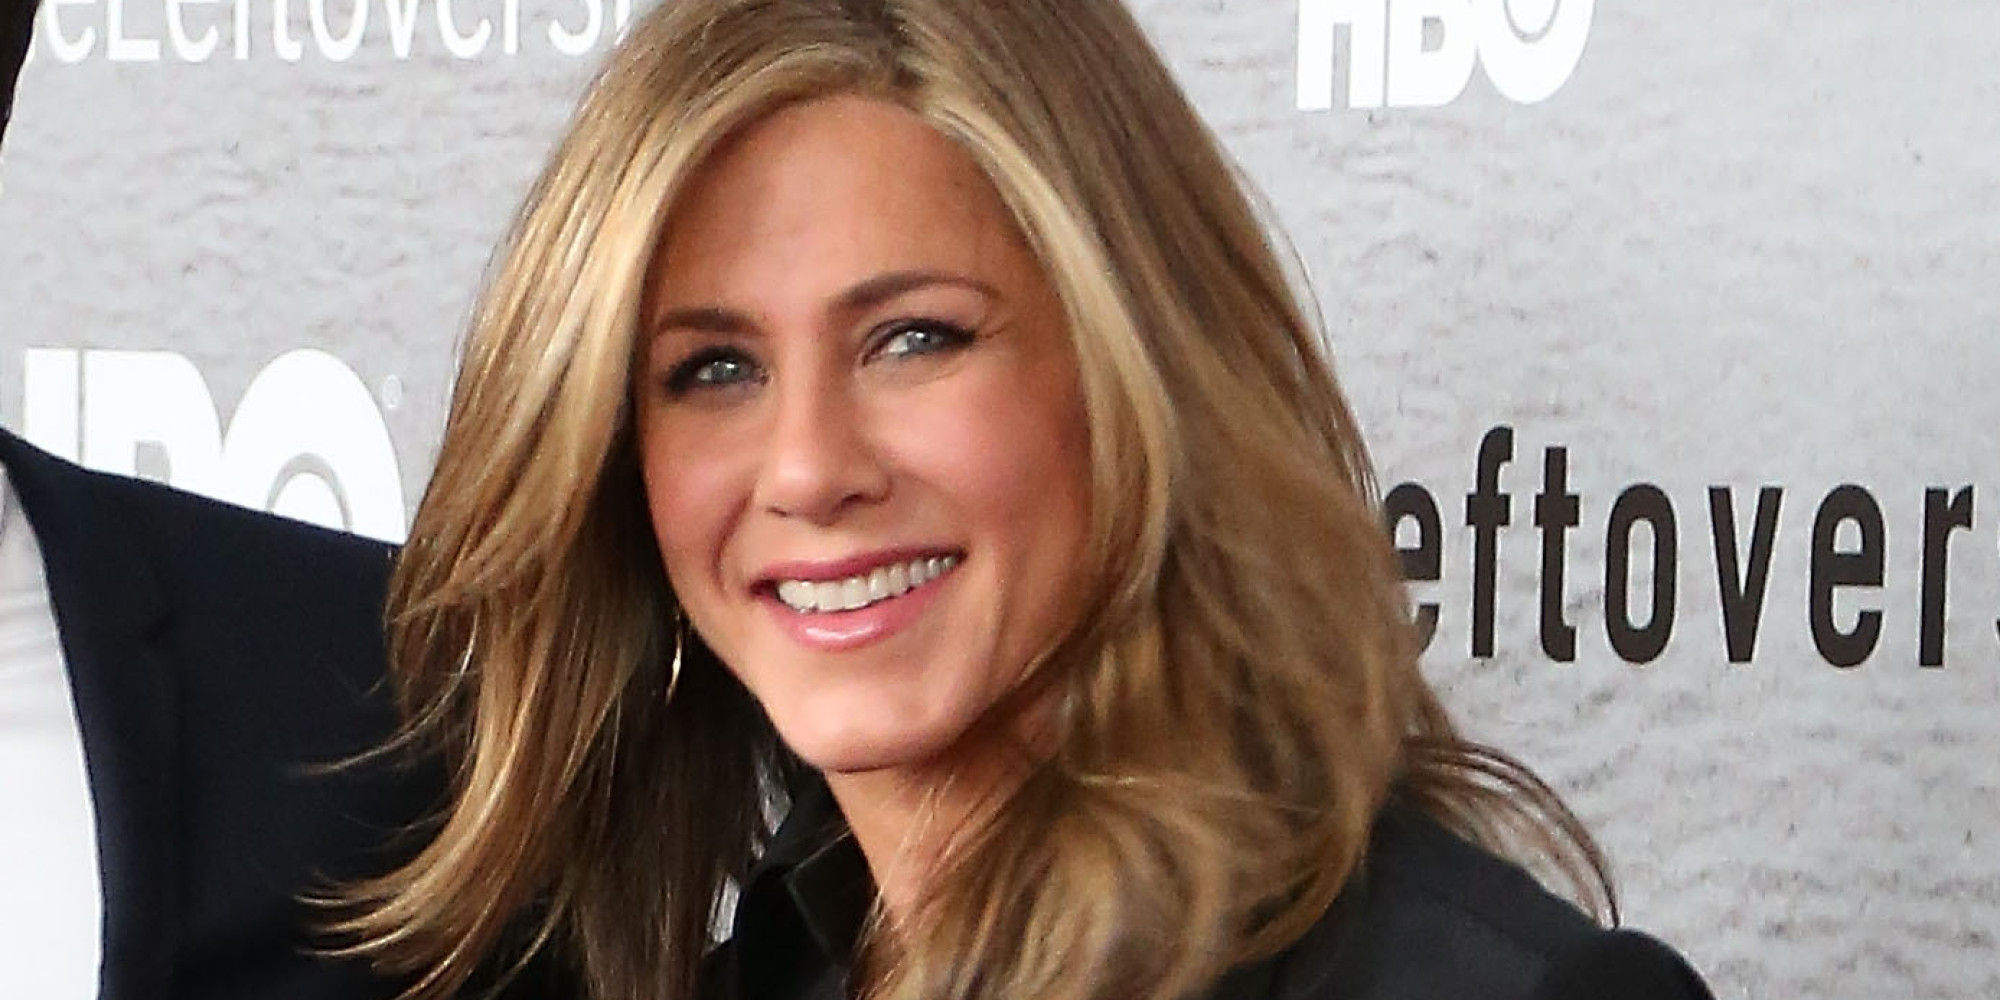 Jennifer Aniston Says Her Value As A Woman Has Nothing